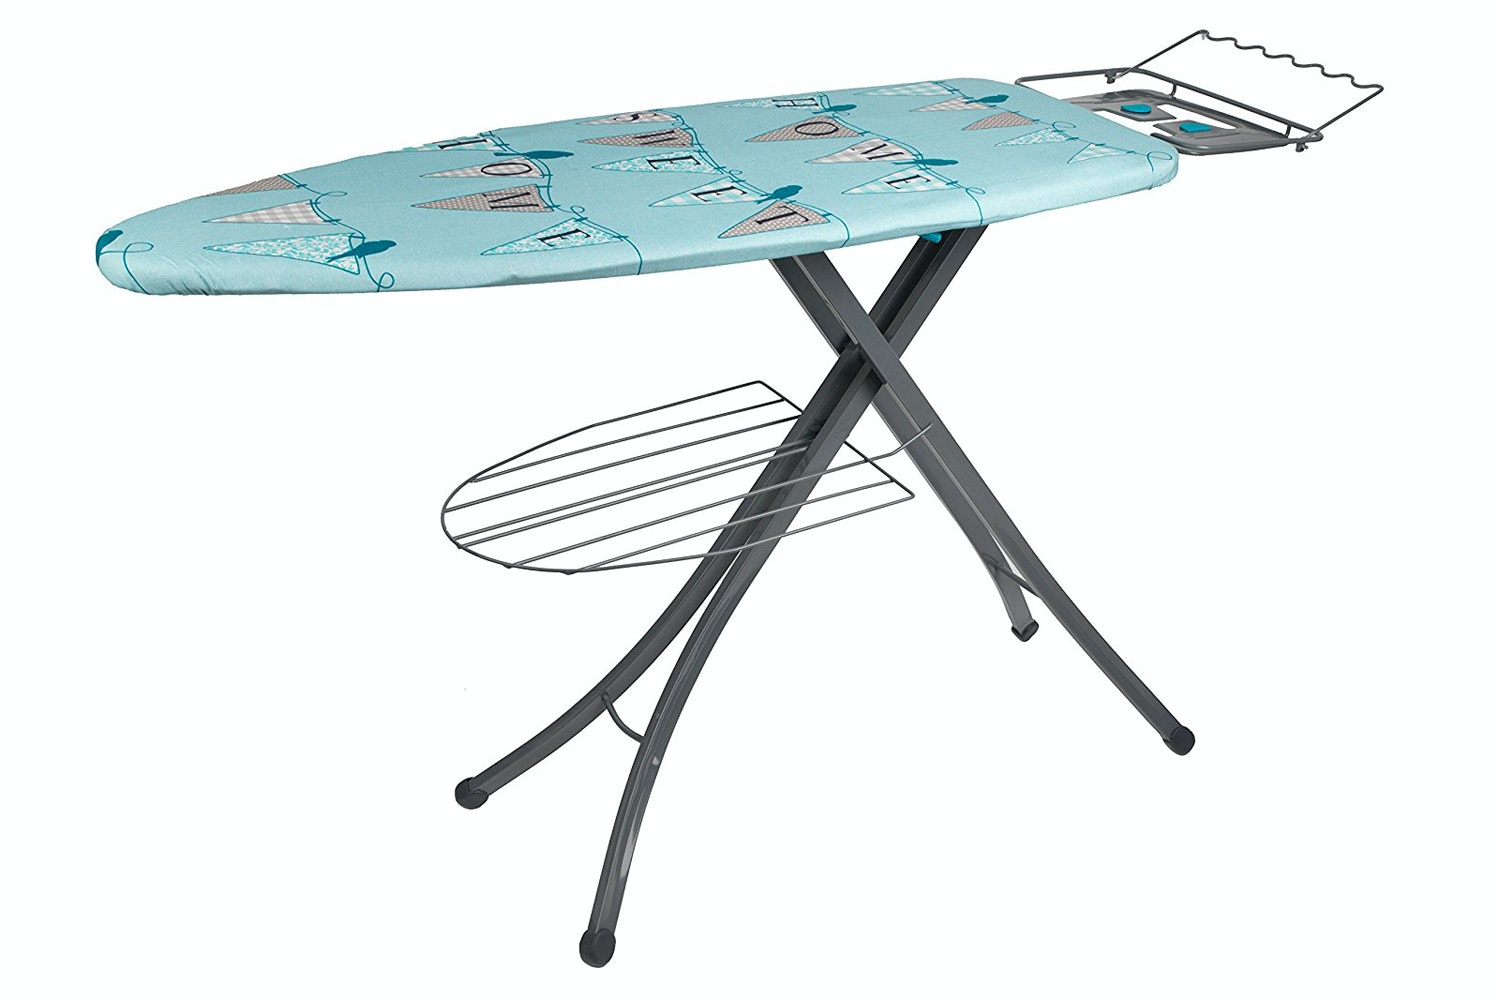 Beldray Ironing Board For Steam Iron | LA024435HOM